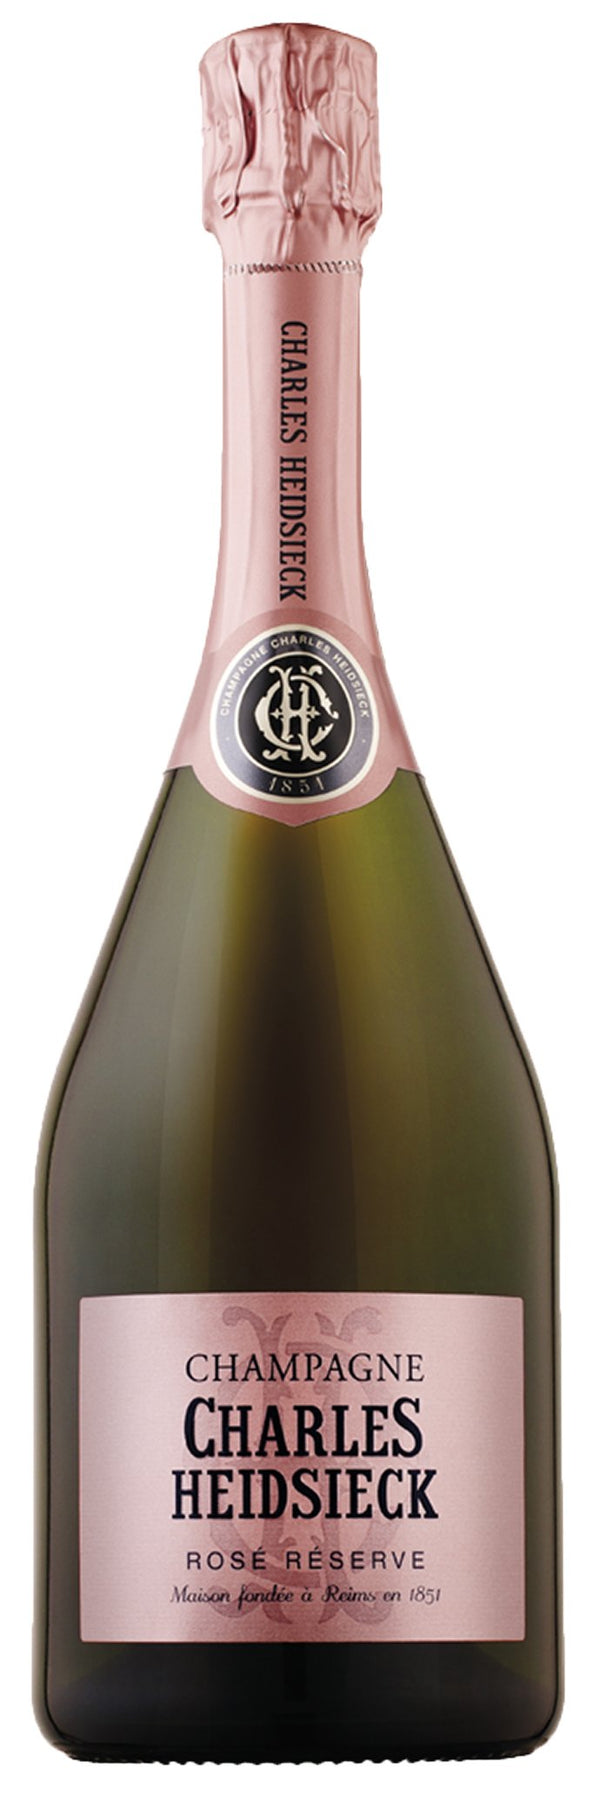 Charles Heidsieck Rose Reserve Champagne - Haar at Home